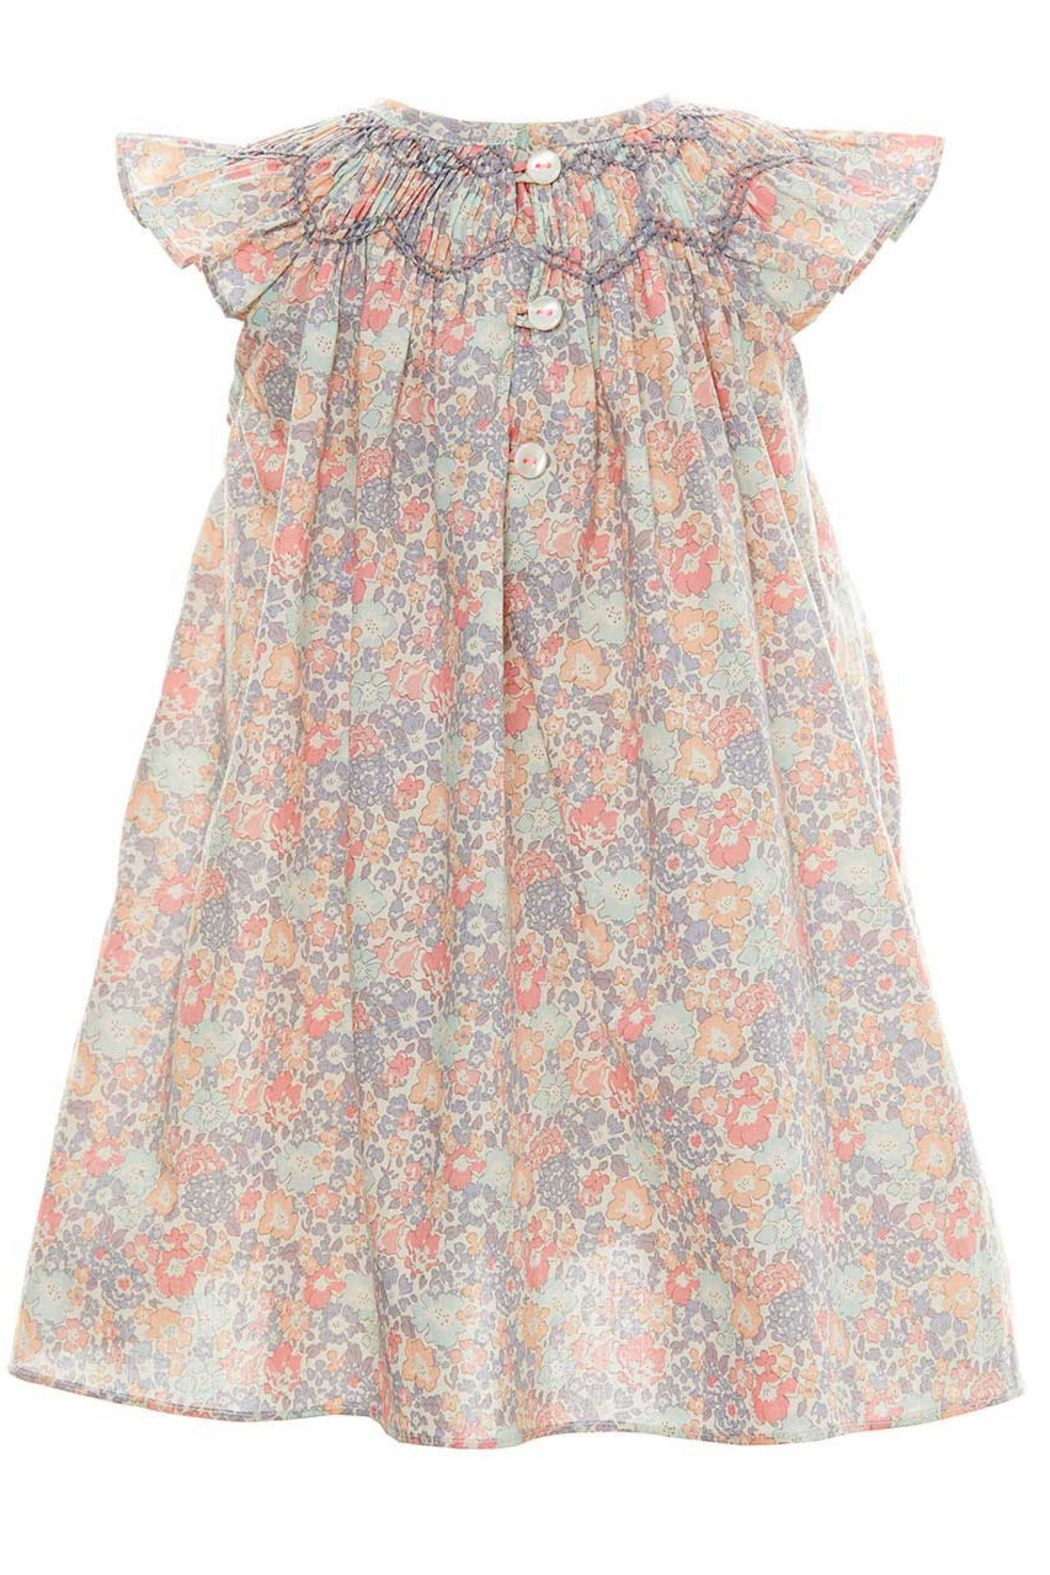 Marie Chantal Ella Dress With Bloomer - Front Full Image